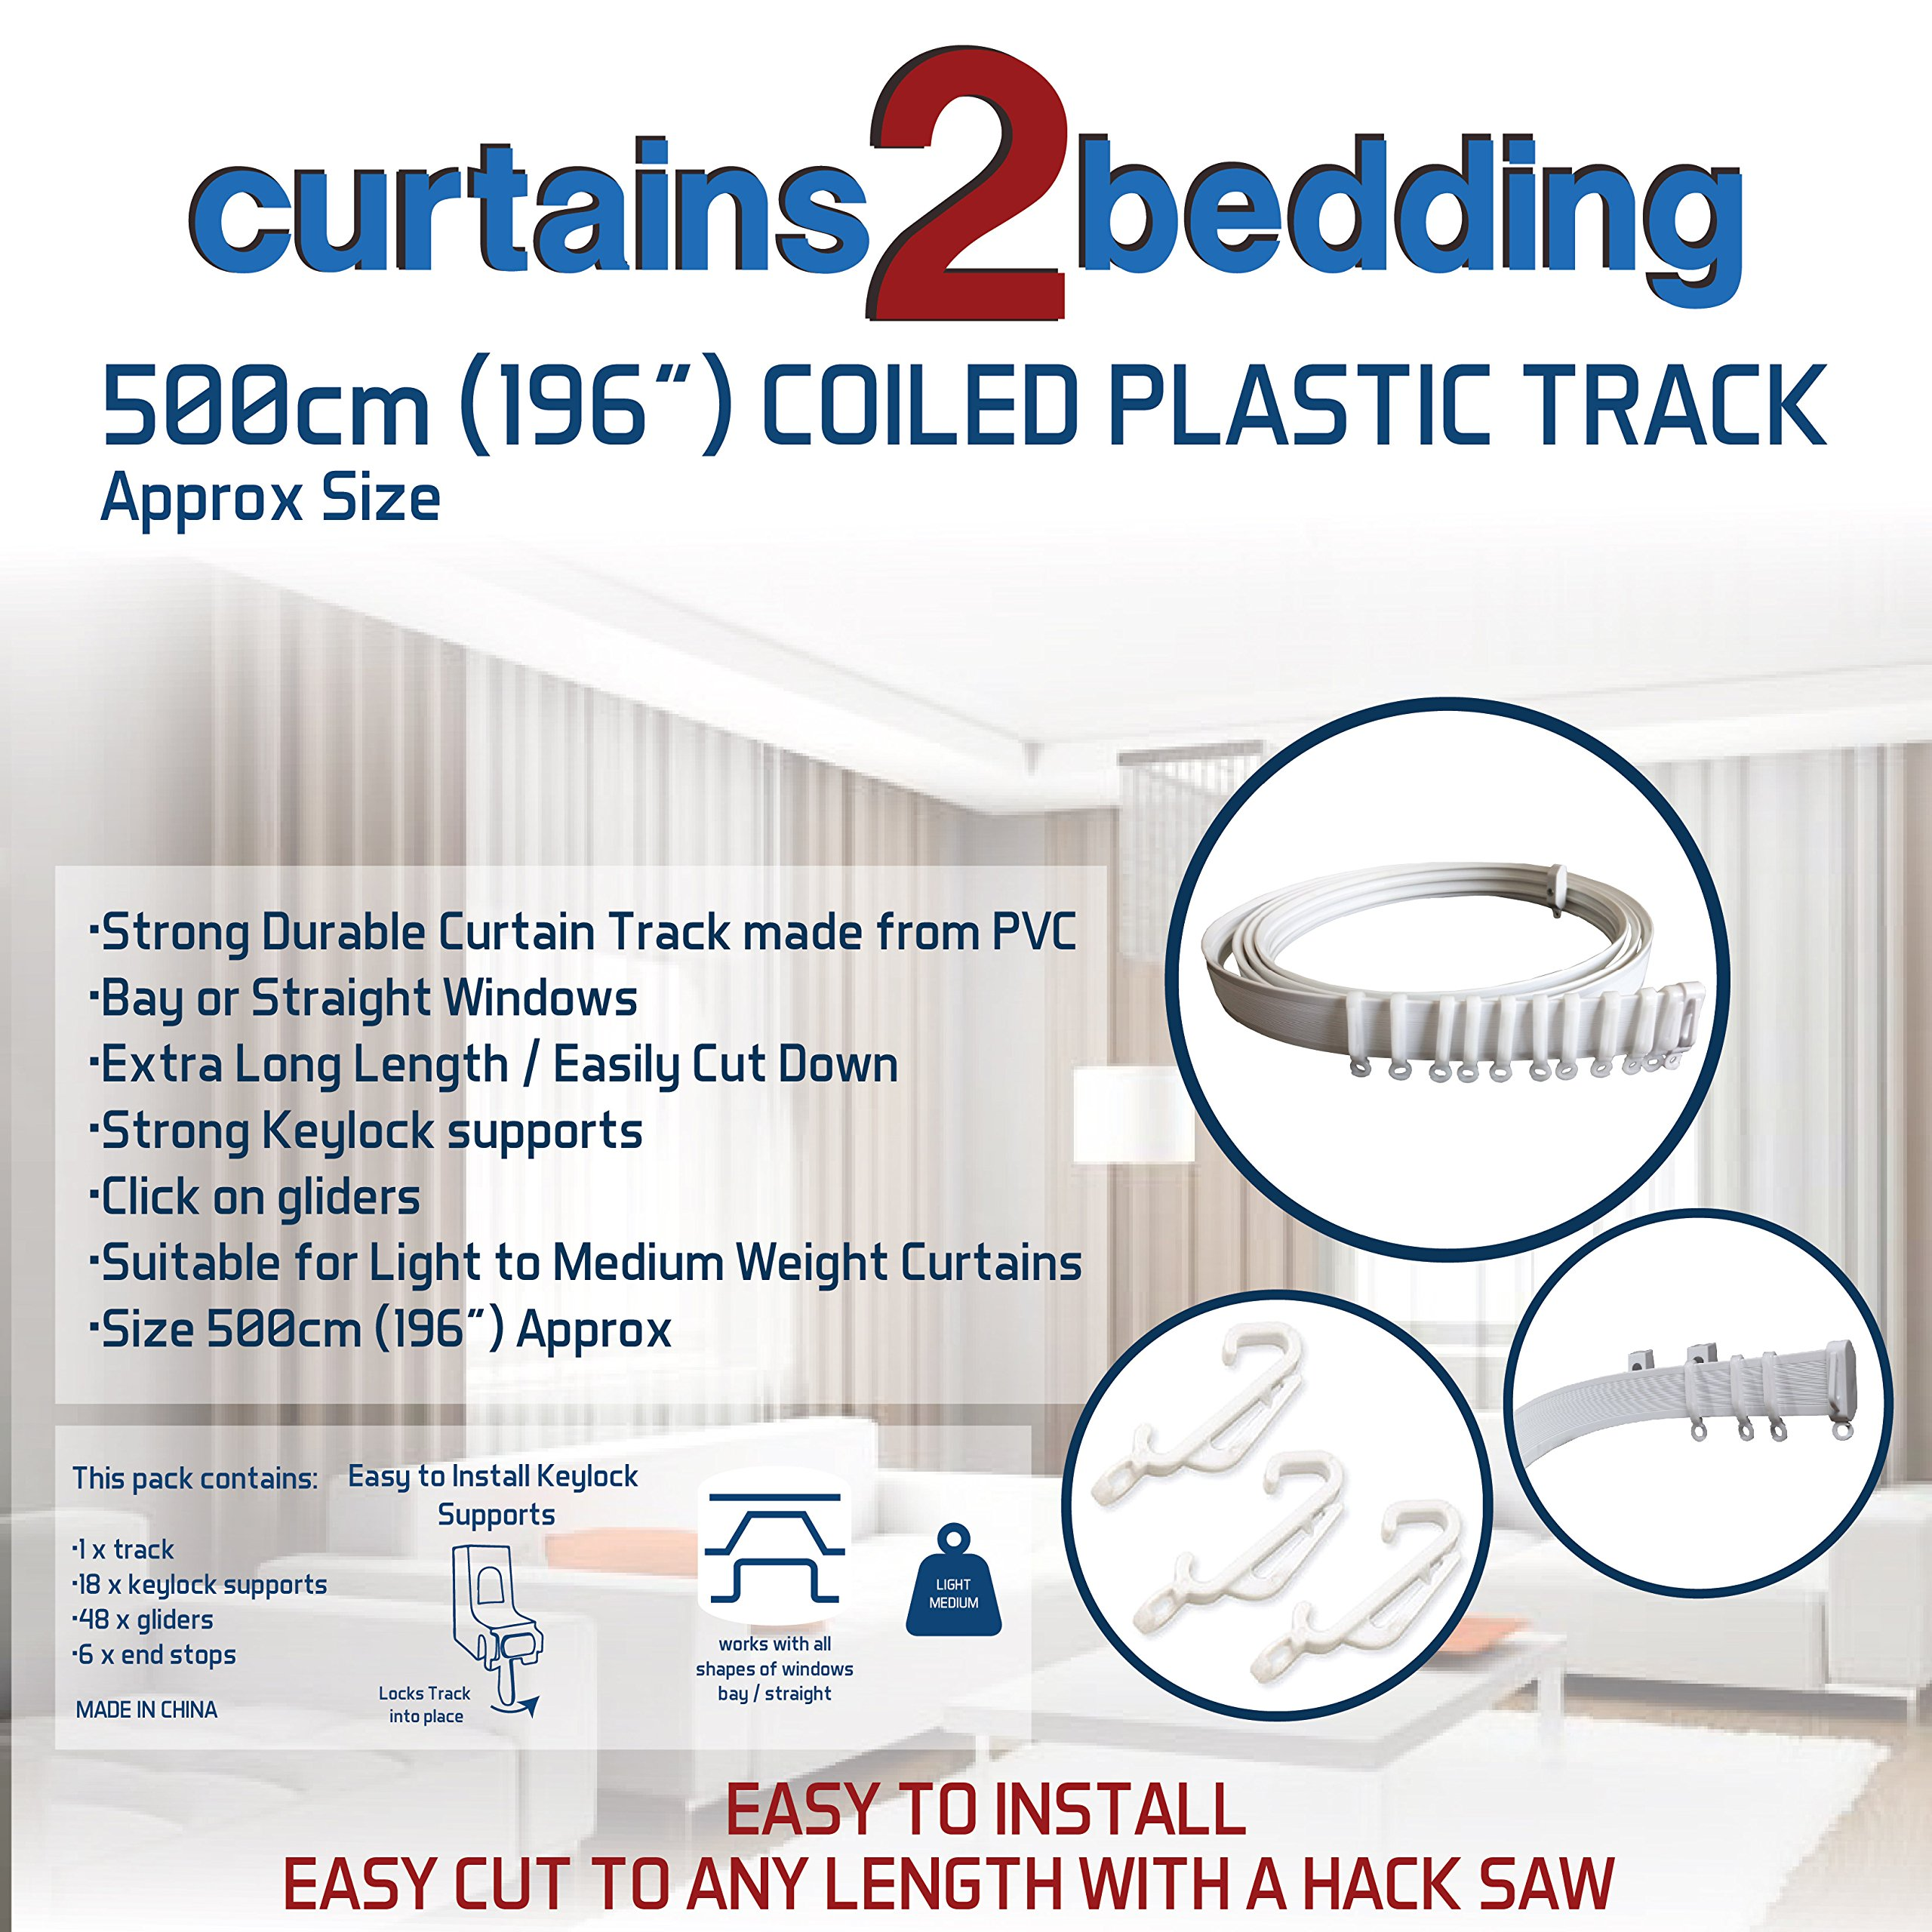 C2B 196'' (500cm) Plastic Curtain Track - Strong, Bendable Curtain Track - Bay & Straight Windows, Wall & Ceiling Mounted, Curtains & Shower Curtains, Easily Cut Down, Parts for 3 Tracks.